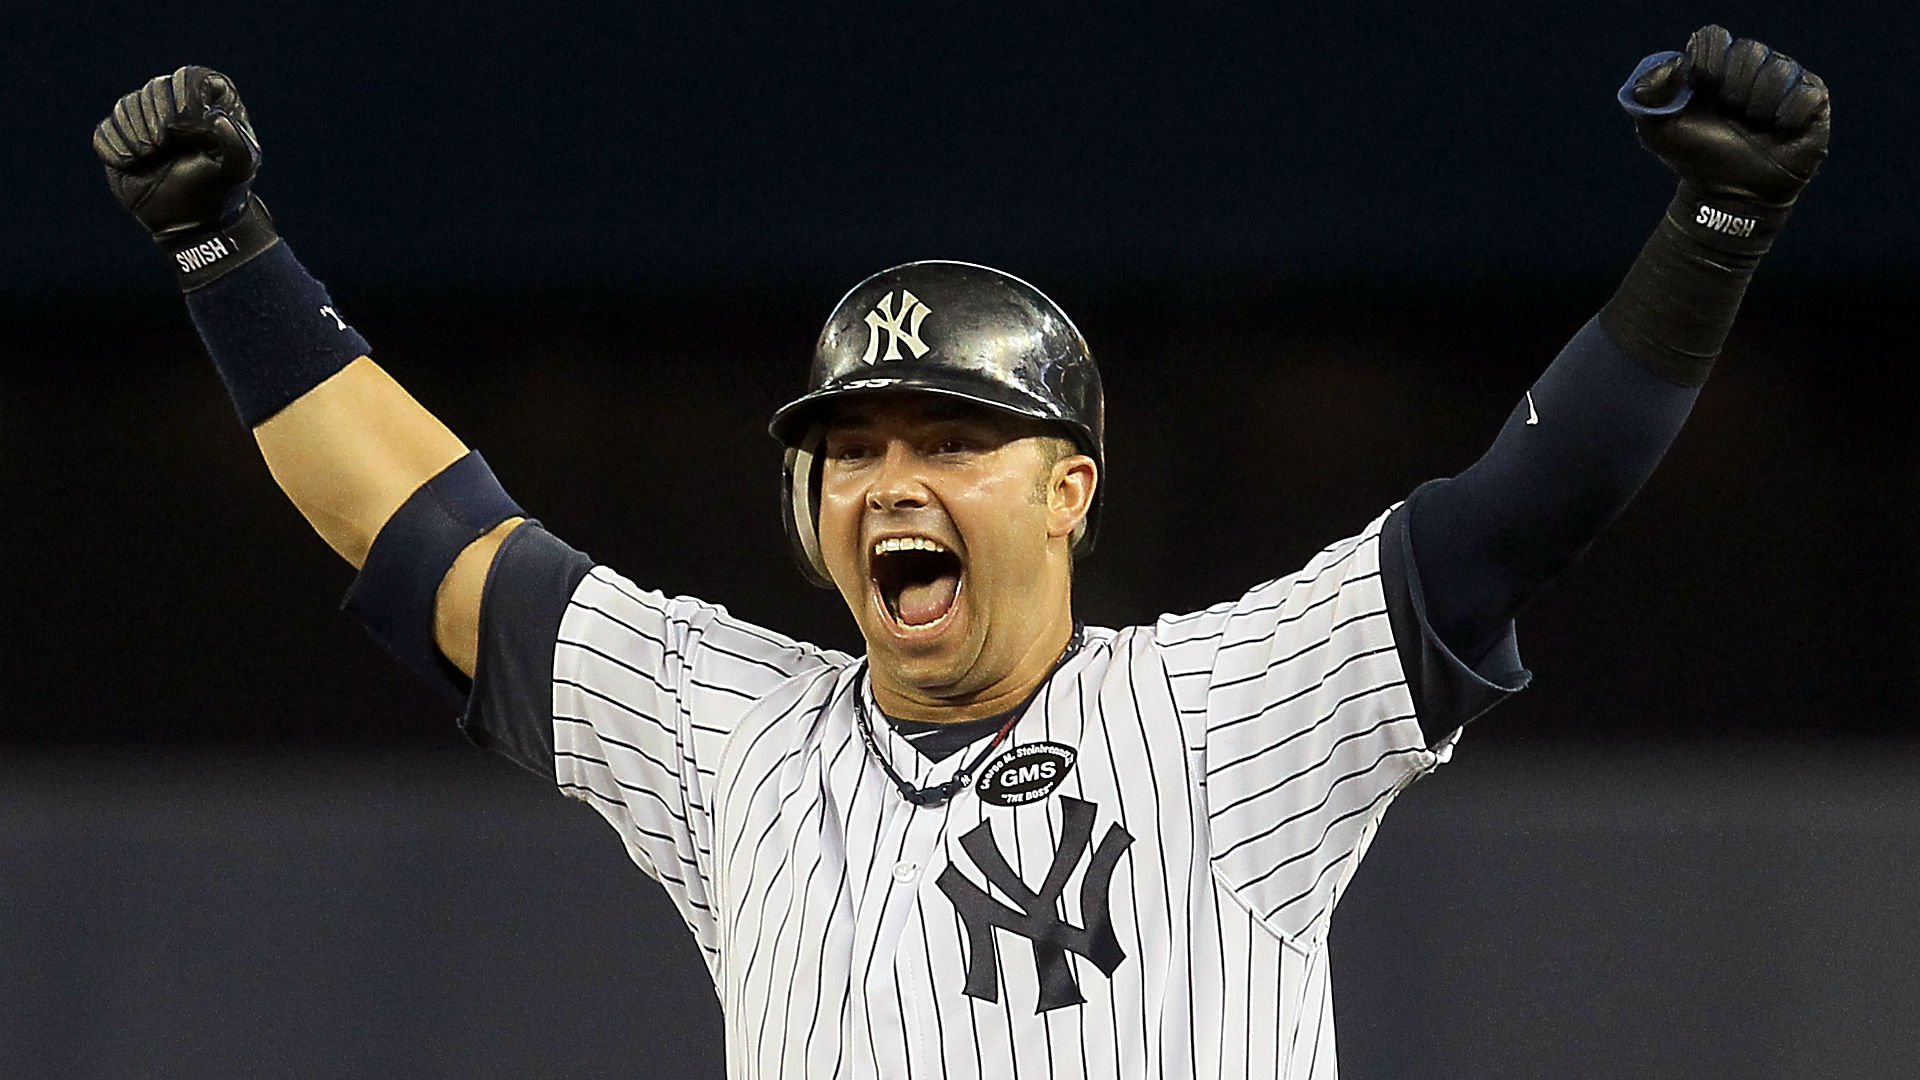 Nov. 13, 2008: When the Yankees brought Nick Swisher and sunshine to the Bronx